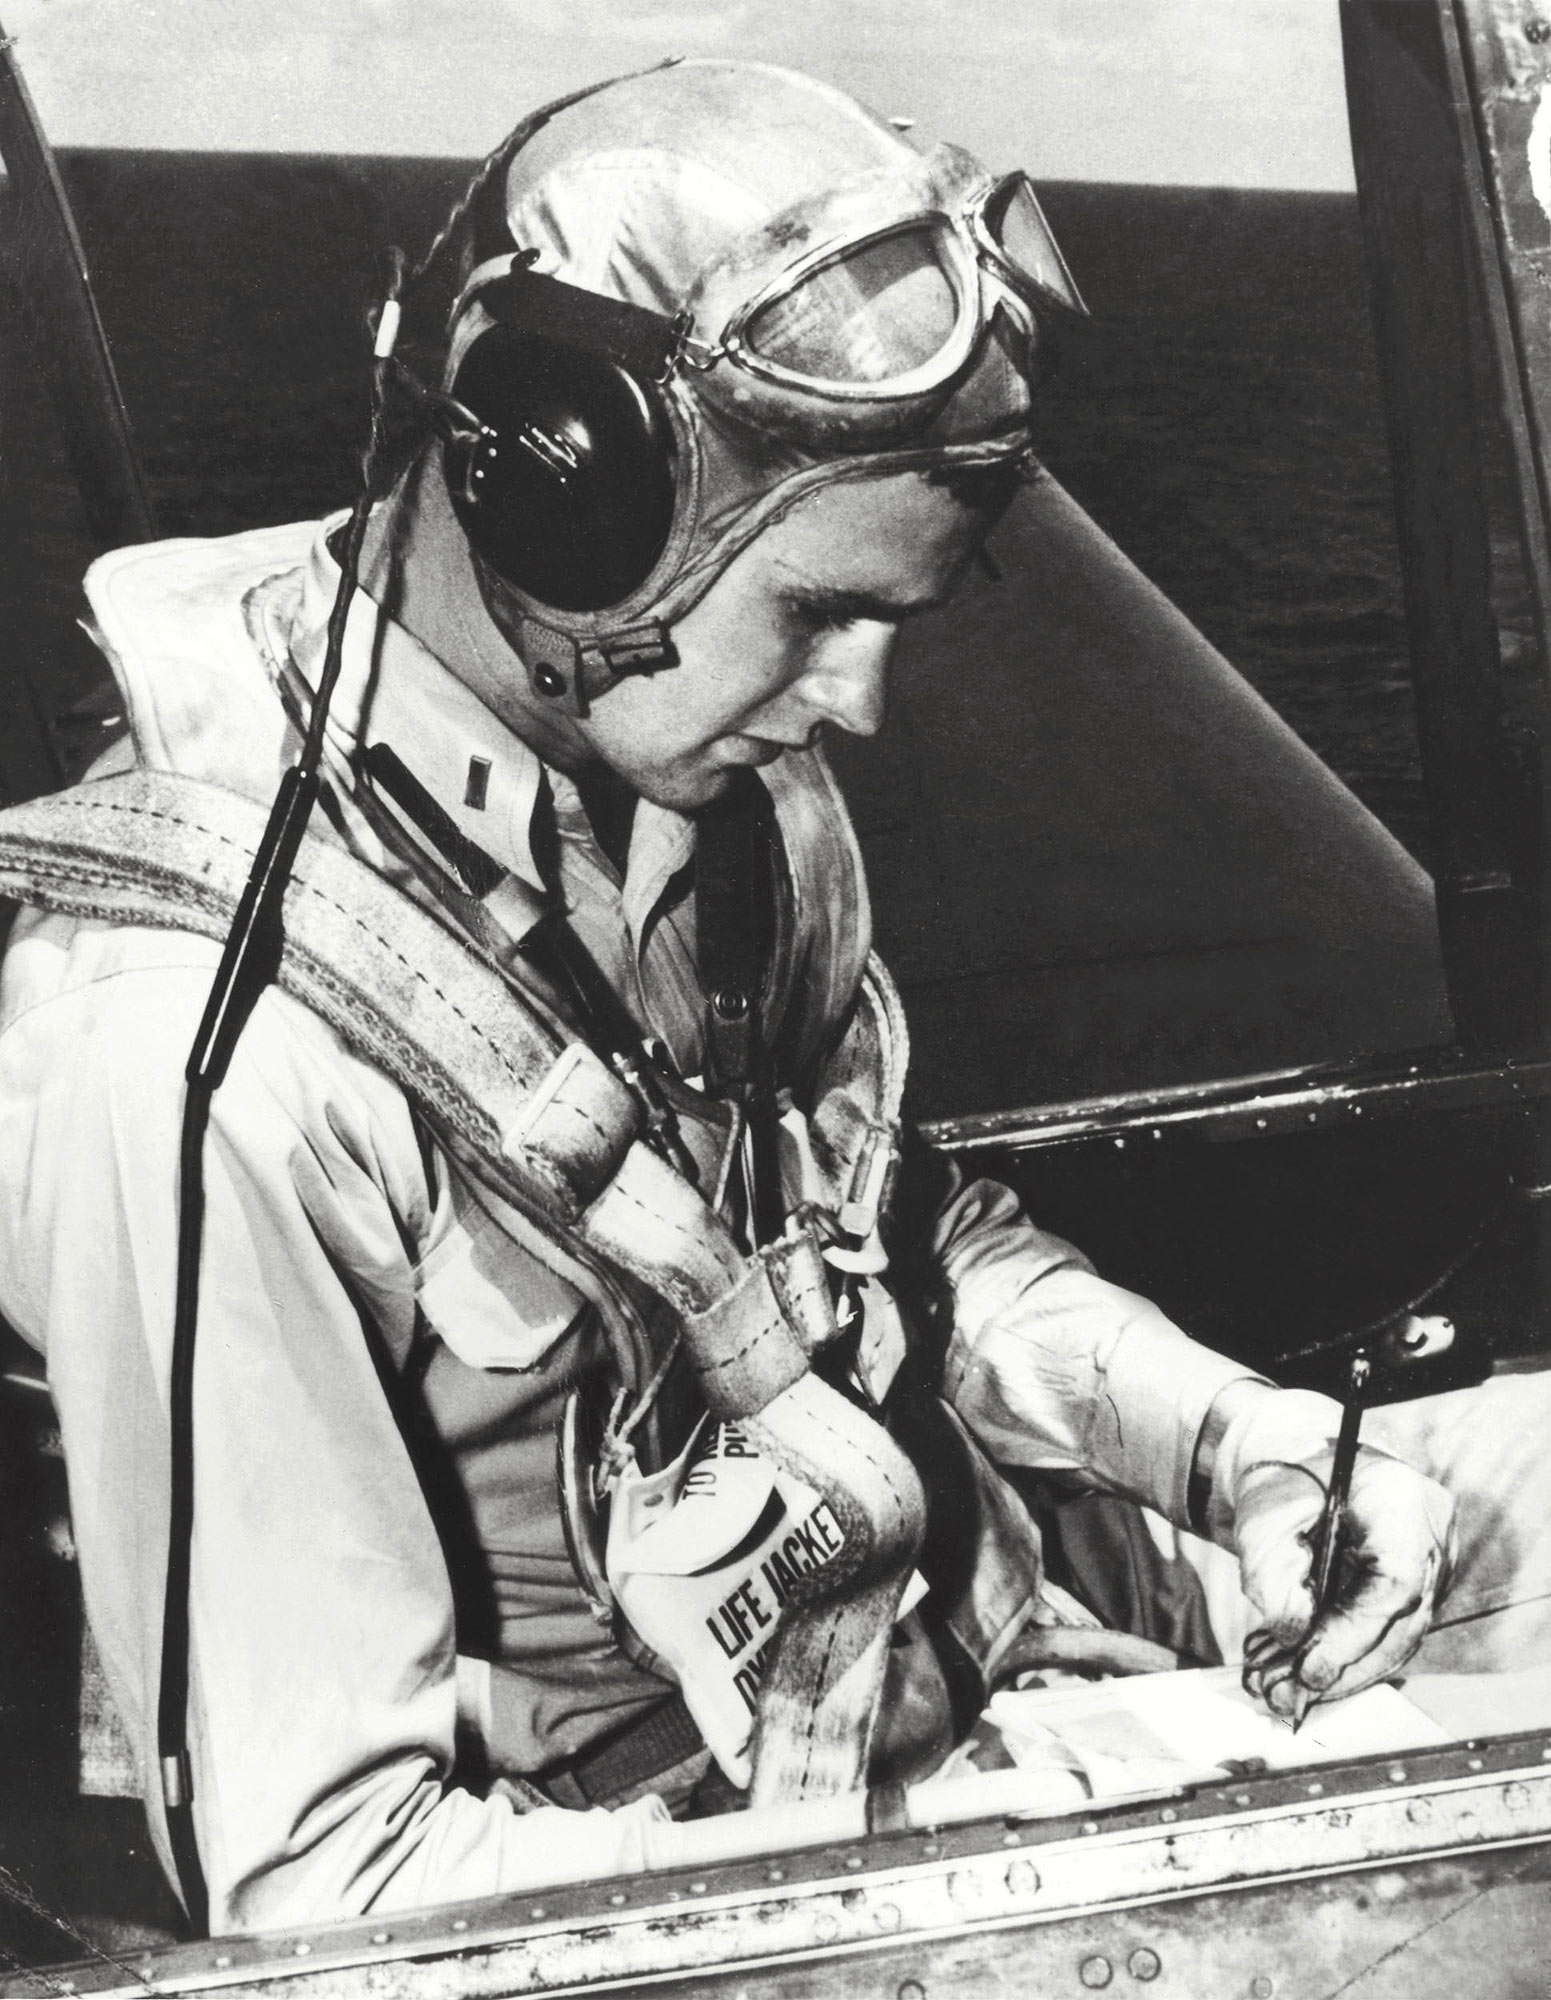 George Herbert Walker Bush is pictured in the cockpit of his TBM Avenger during the World War II. Born 12 June 1924 in Milton, Massachussetts, George Bush Yale graduated with a degree in Economics in 1948, made a fortune drilling oil before entering politics in 1964. US Congressman from Texas (1966-1970), ambassador to the United nations (1971-1974), Special Envoy to China (1974-1975), Republican National Chairman (1975-1976), Central Intelligence Agency (CIA) director (1976-1977), vice president of the US (1981-1959) George Bush is eventually elected president of the US 08 November 1988 against Democratic nominee Michael Dukakis. AFP PHOTO/WHITE HOUSE (Photo credit should read /AFP/Getty Images)